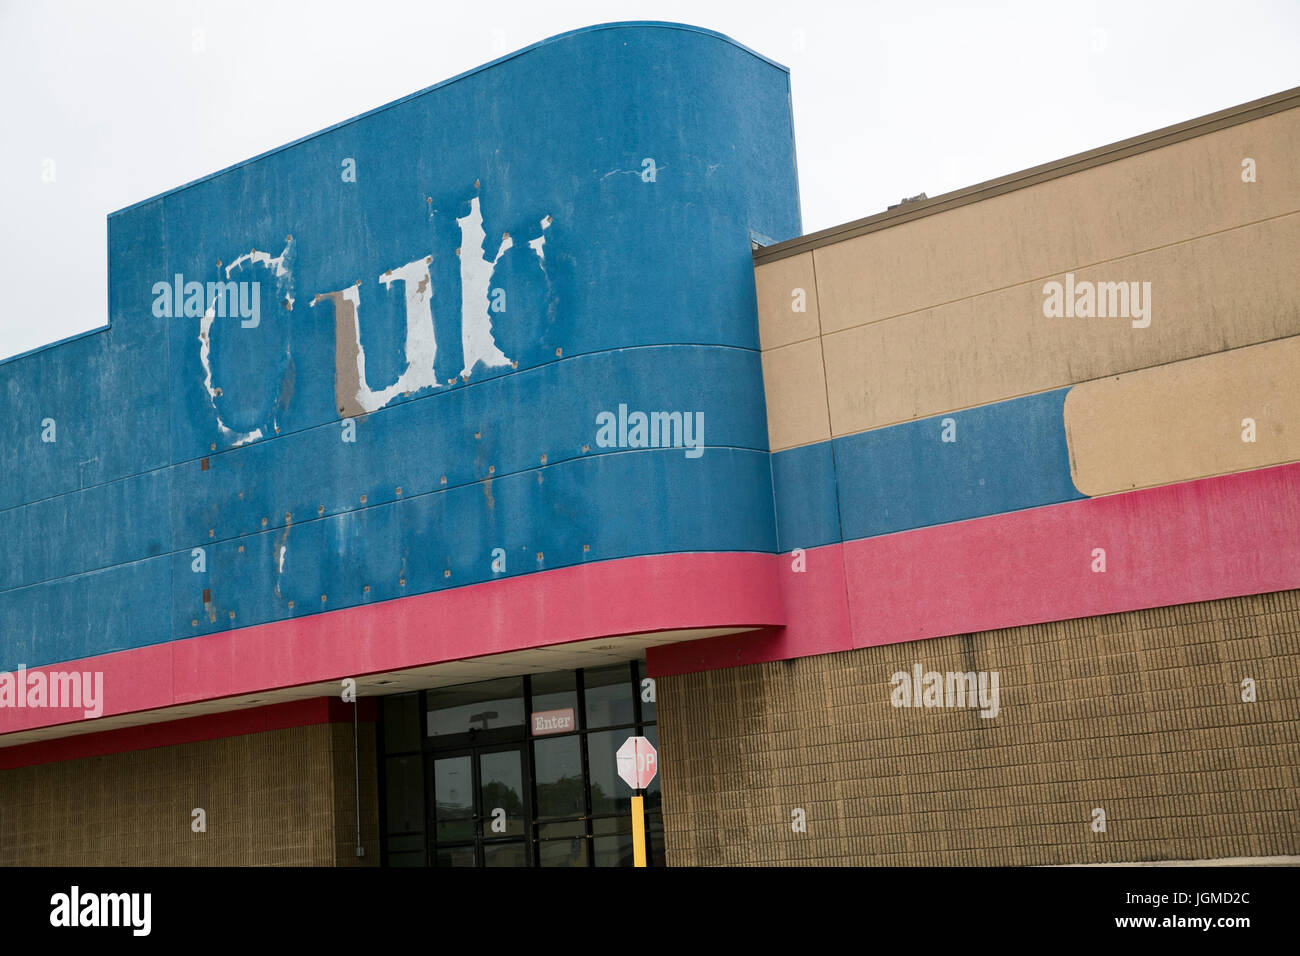 A logo sign outside of a closed and abandoned Cub Foods retail store in Trotwood, Ohio on June 30, 2017. Stock Photo